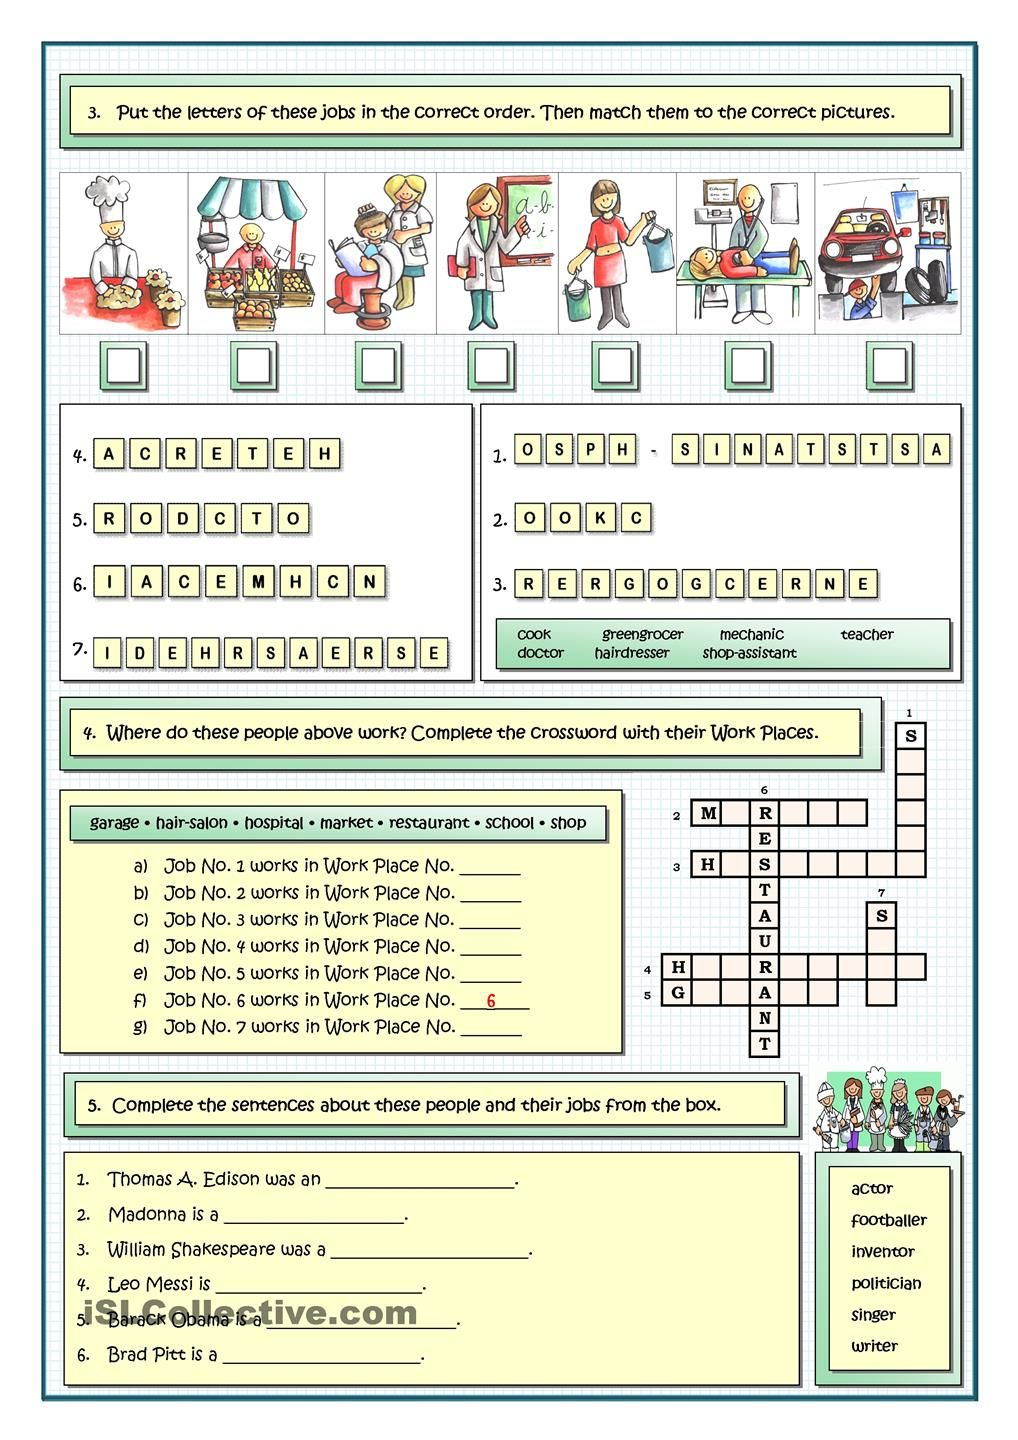 JOBS AND PROFESSIONS | English | Pinterest | English test ...